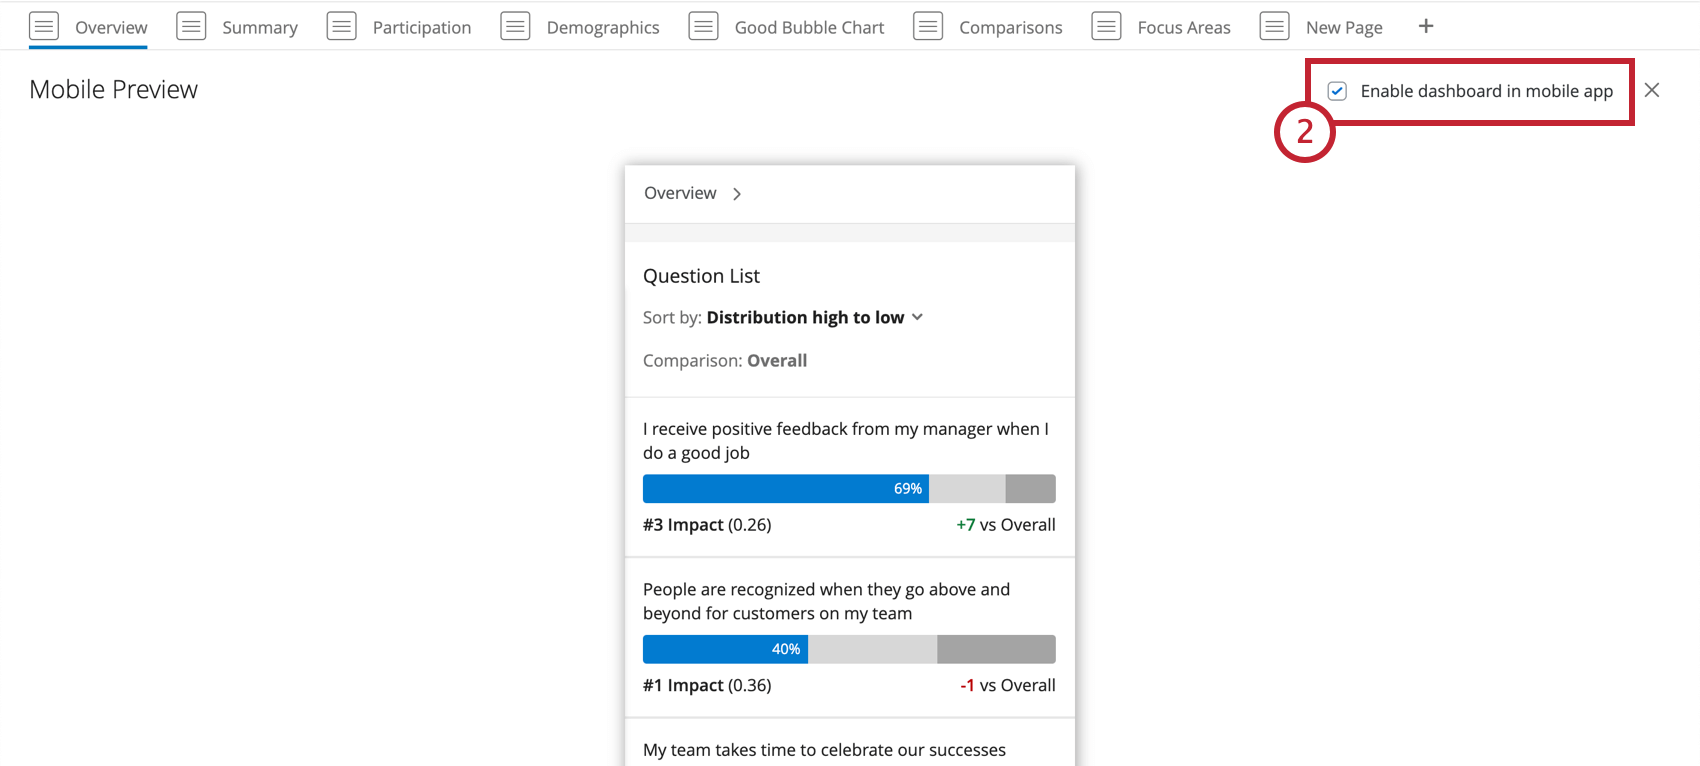 the Enable dashboard in mobile app setting